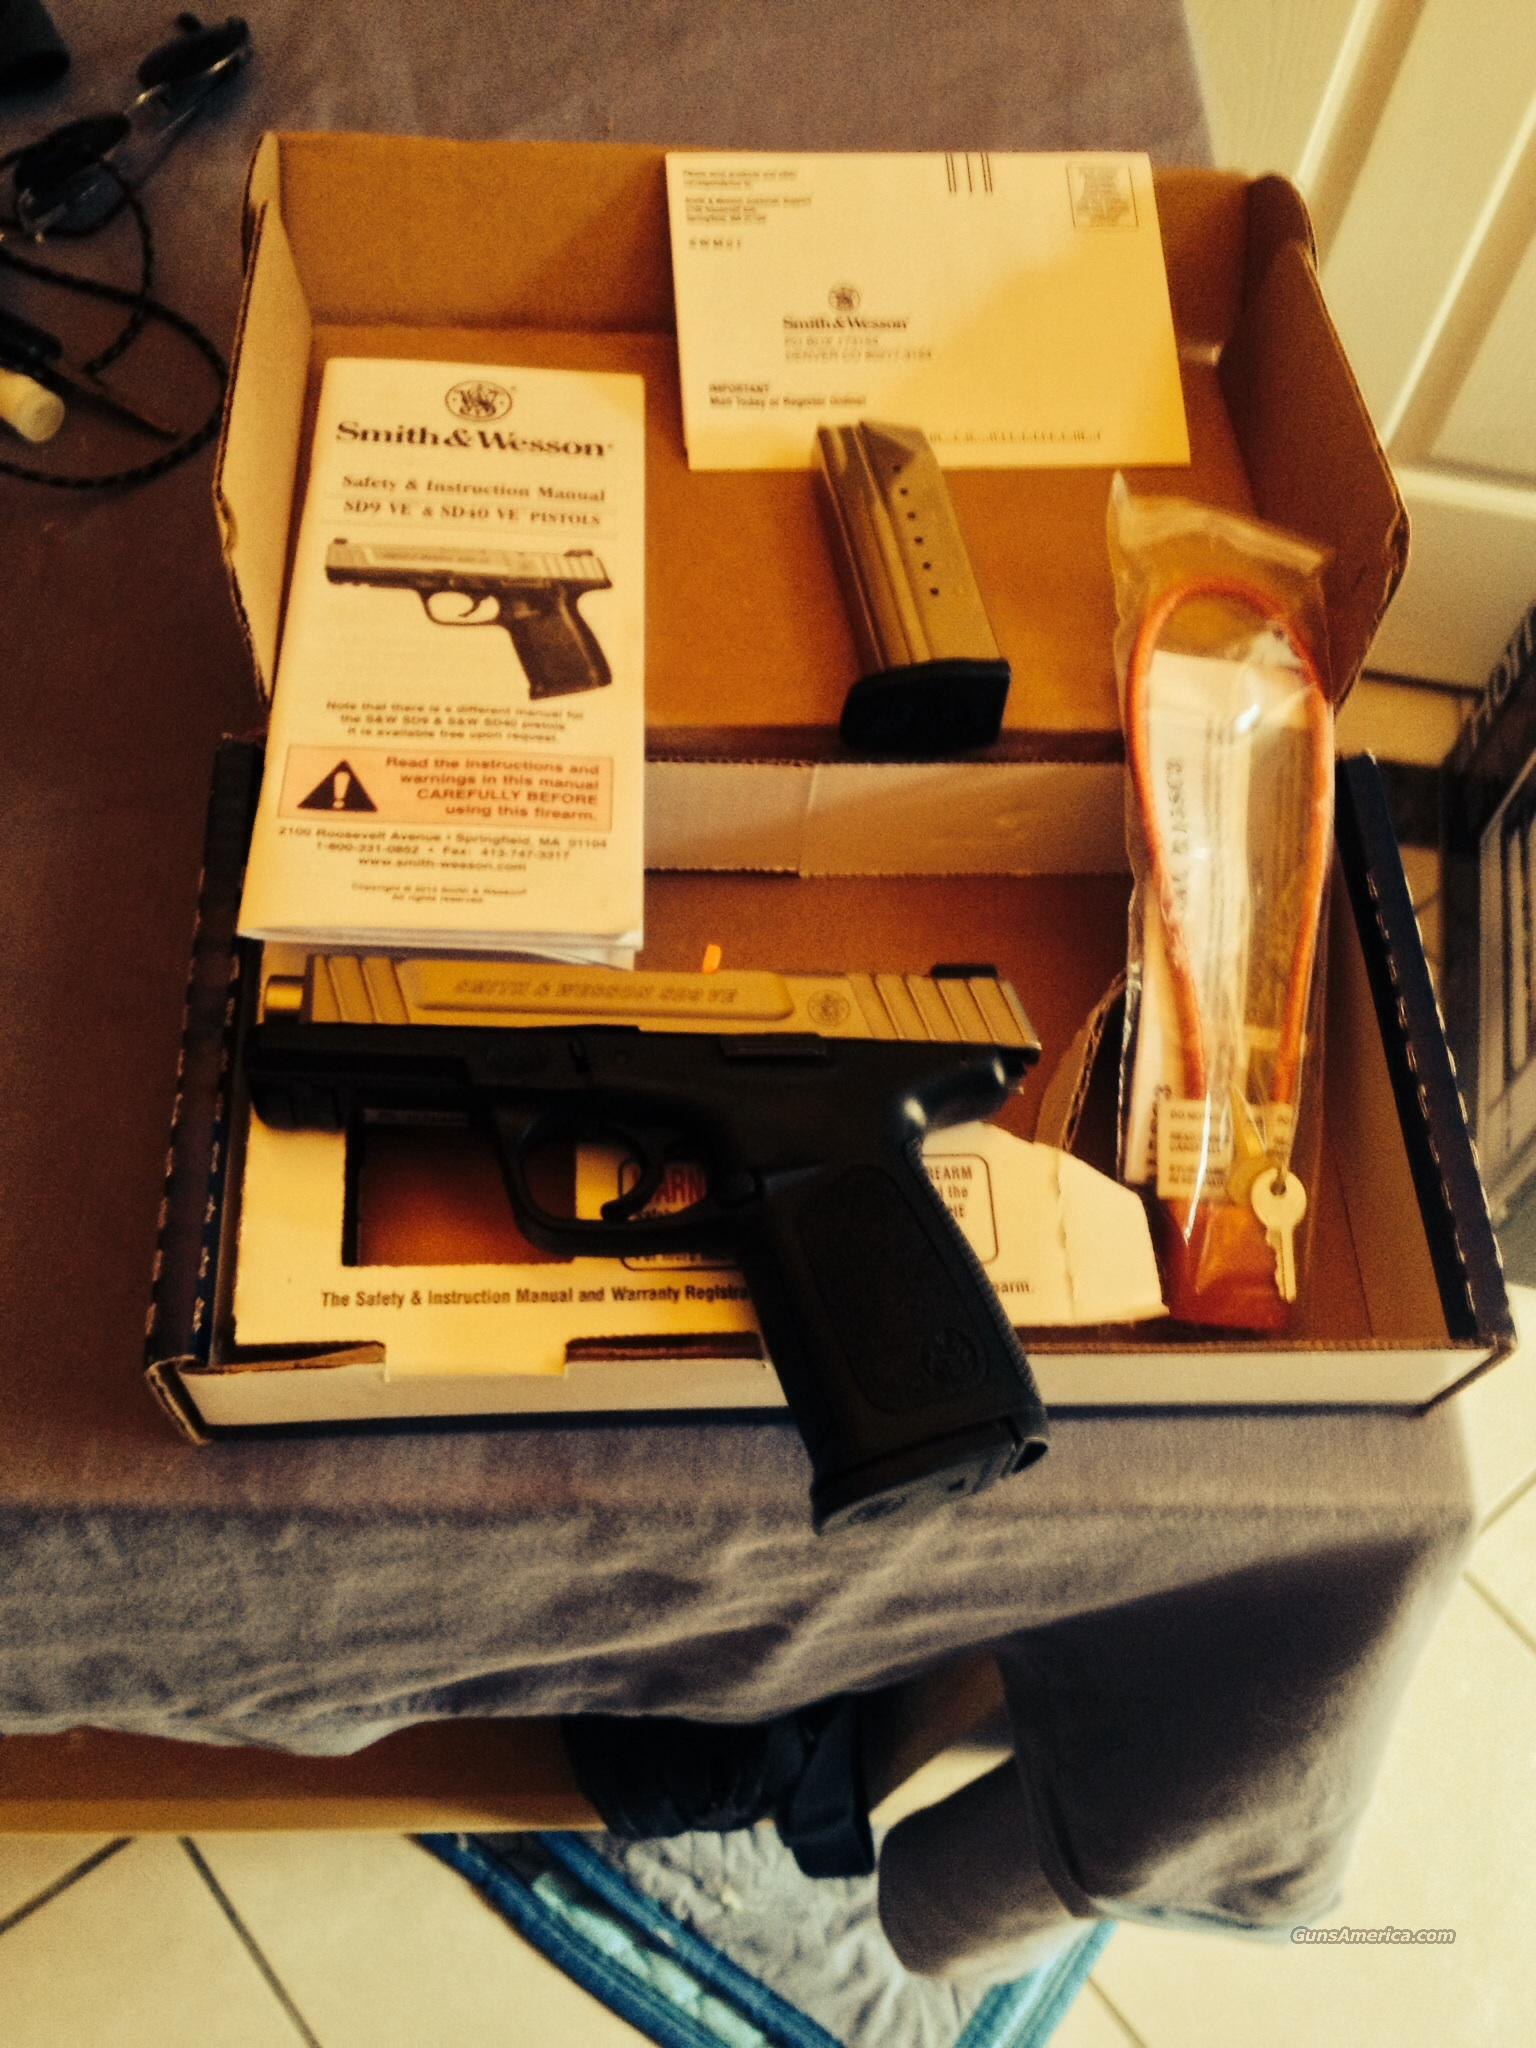 NIB Smith & Wesson SD9 VE 9mm   Guns > Pistols > Smith & Wesson Pistols - Autos > Polymer Frame